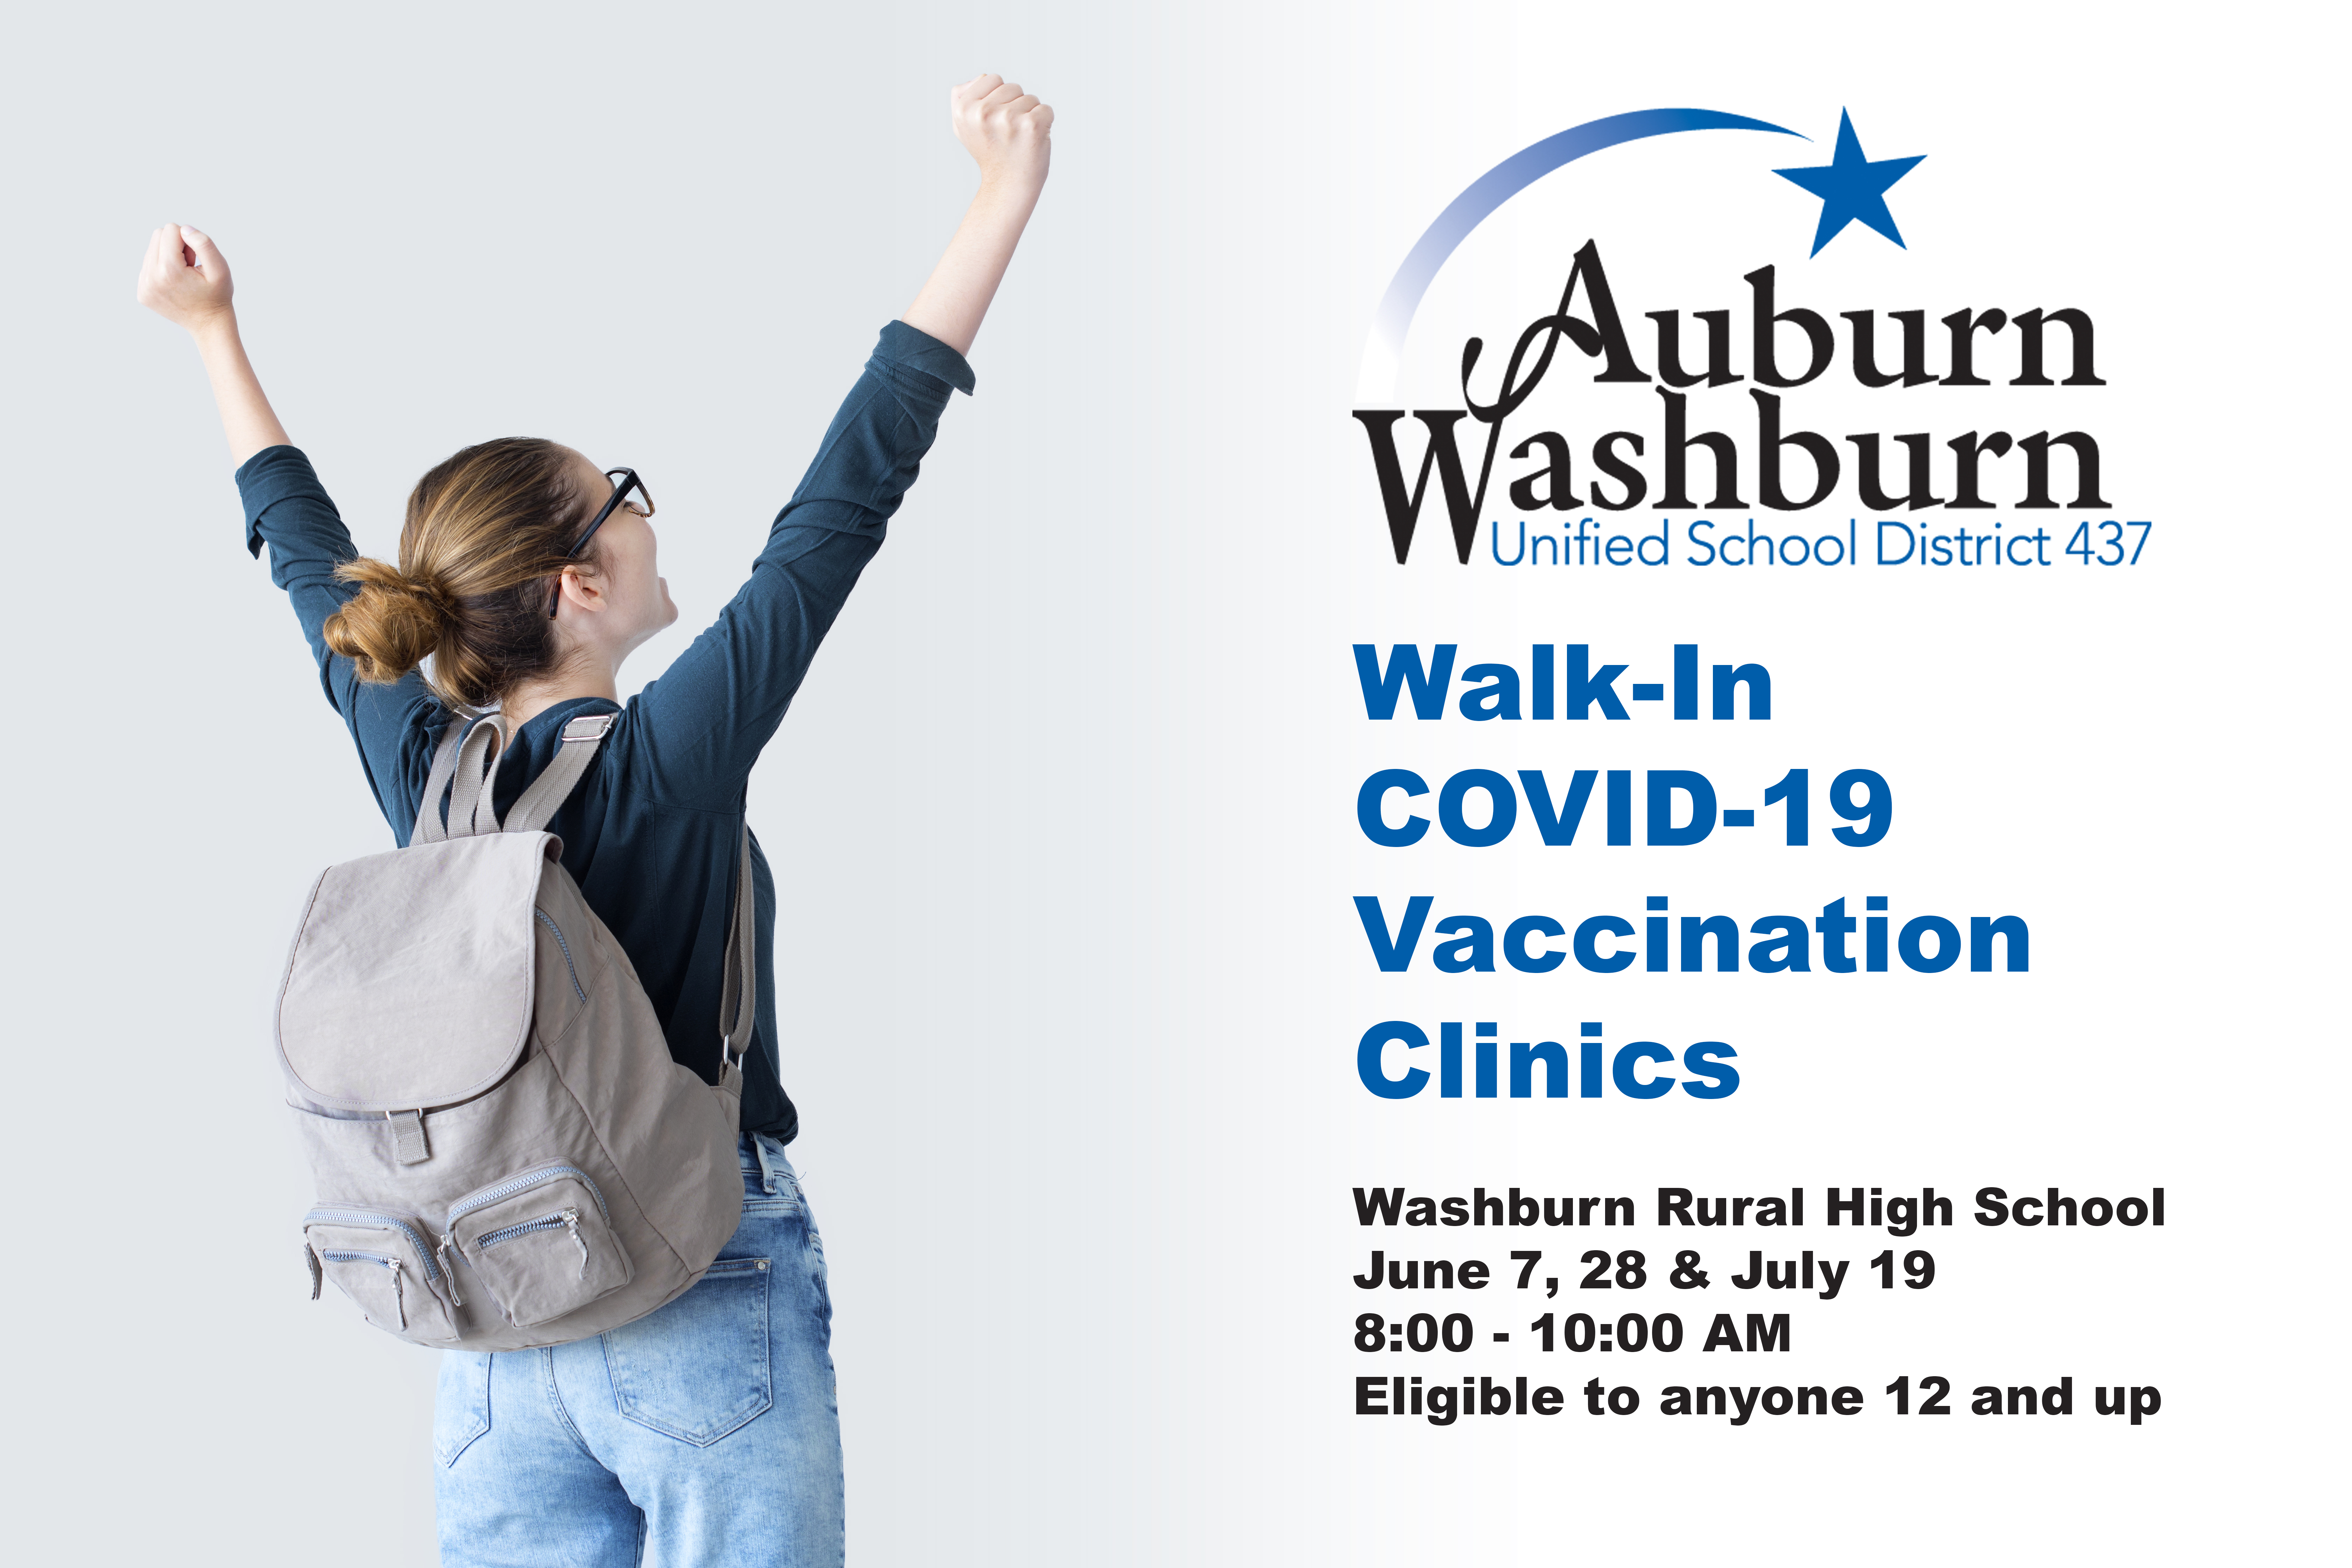 Washburn Rural High School. June 7, June 28, and July 19, 8:00 to 10:00 AM. Eligible to anyone 12 and up.